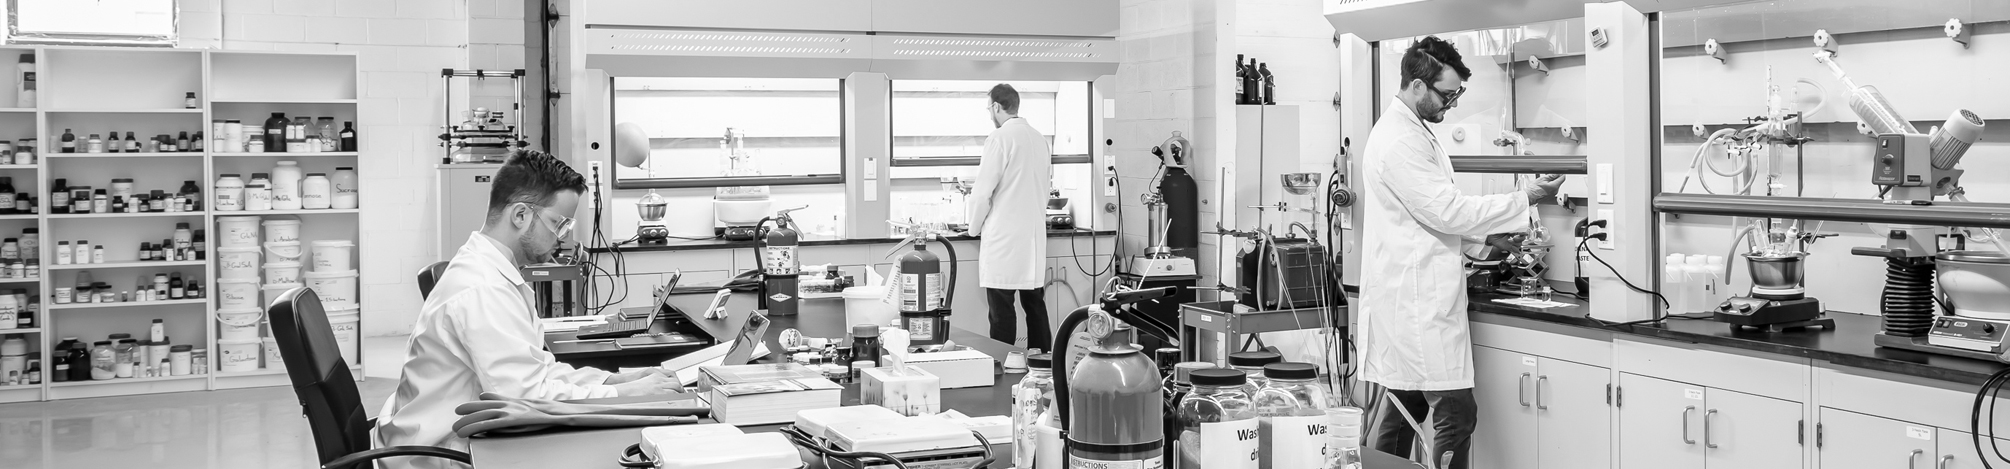 Synthesis laboratory with fume hoods, equipment, and chemicals, and three chemists working at the hoods or at the bench.